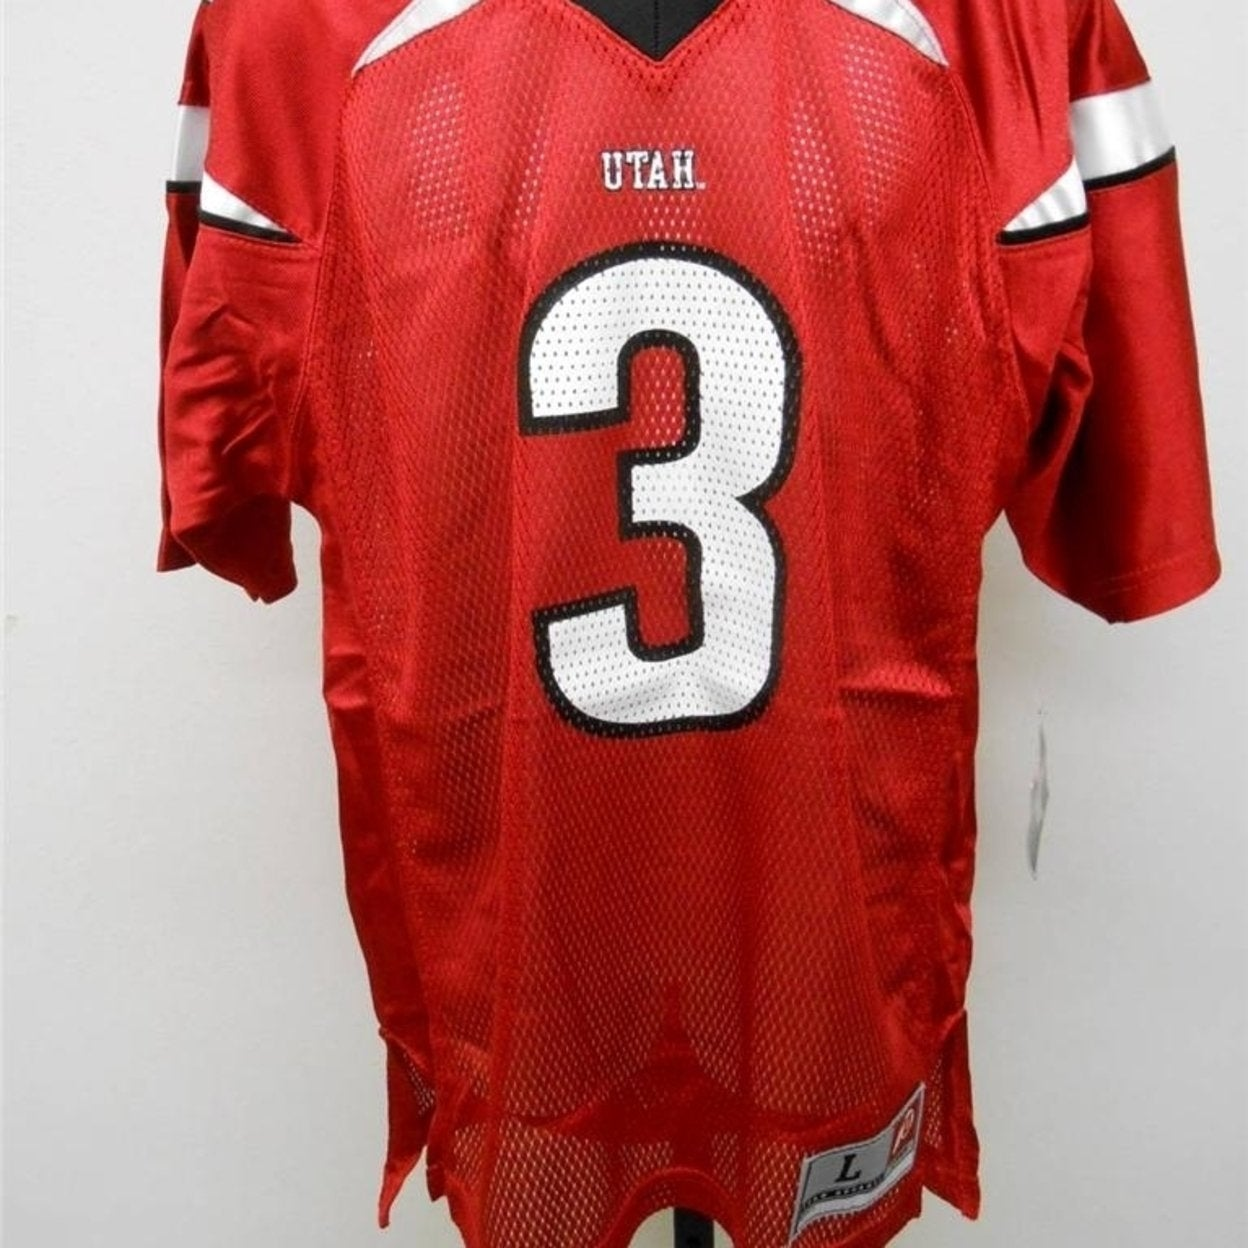 cheap for discount 74375 e7e9e Red 3 Utah Utes Youth or Kids Sizes S-M-L-XL (4-5/6-7-18/20) Adidas Jersey